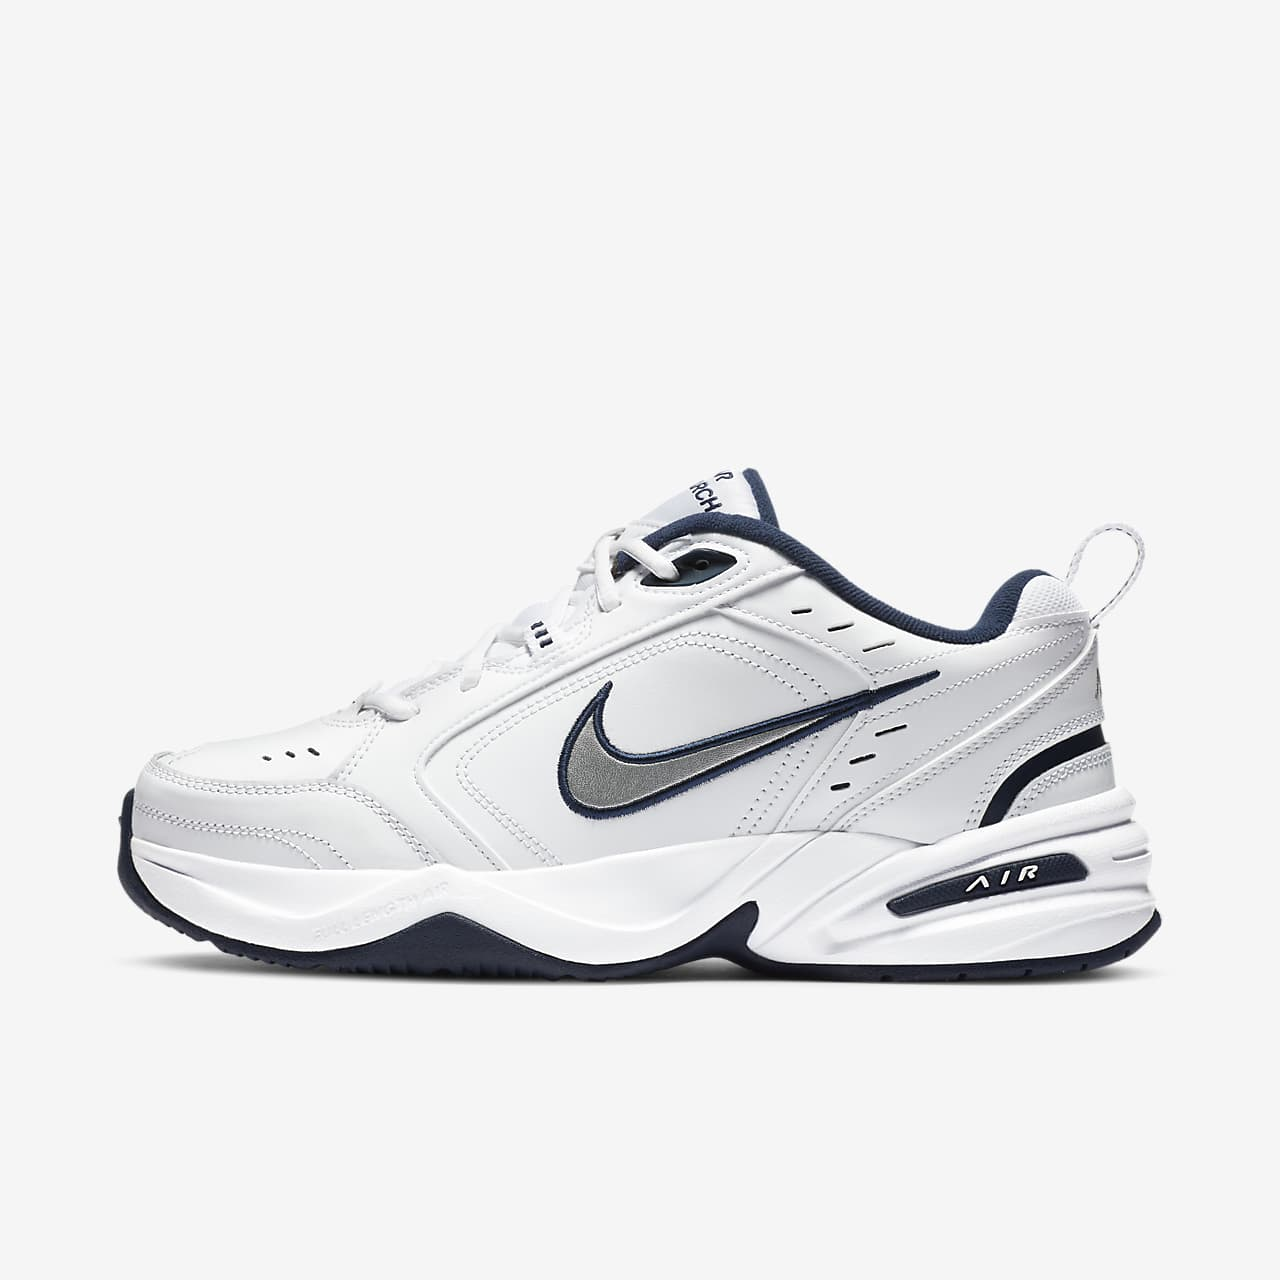 019ff4b183d6 Nike Air Monarch IV Lifestyle Gym Shoe. Nike.com AU